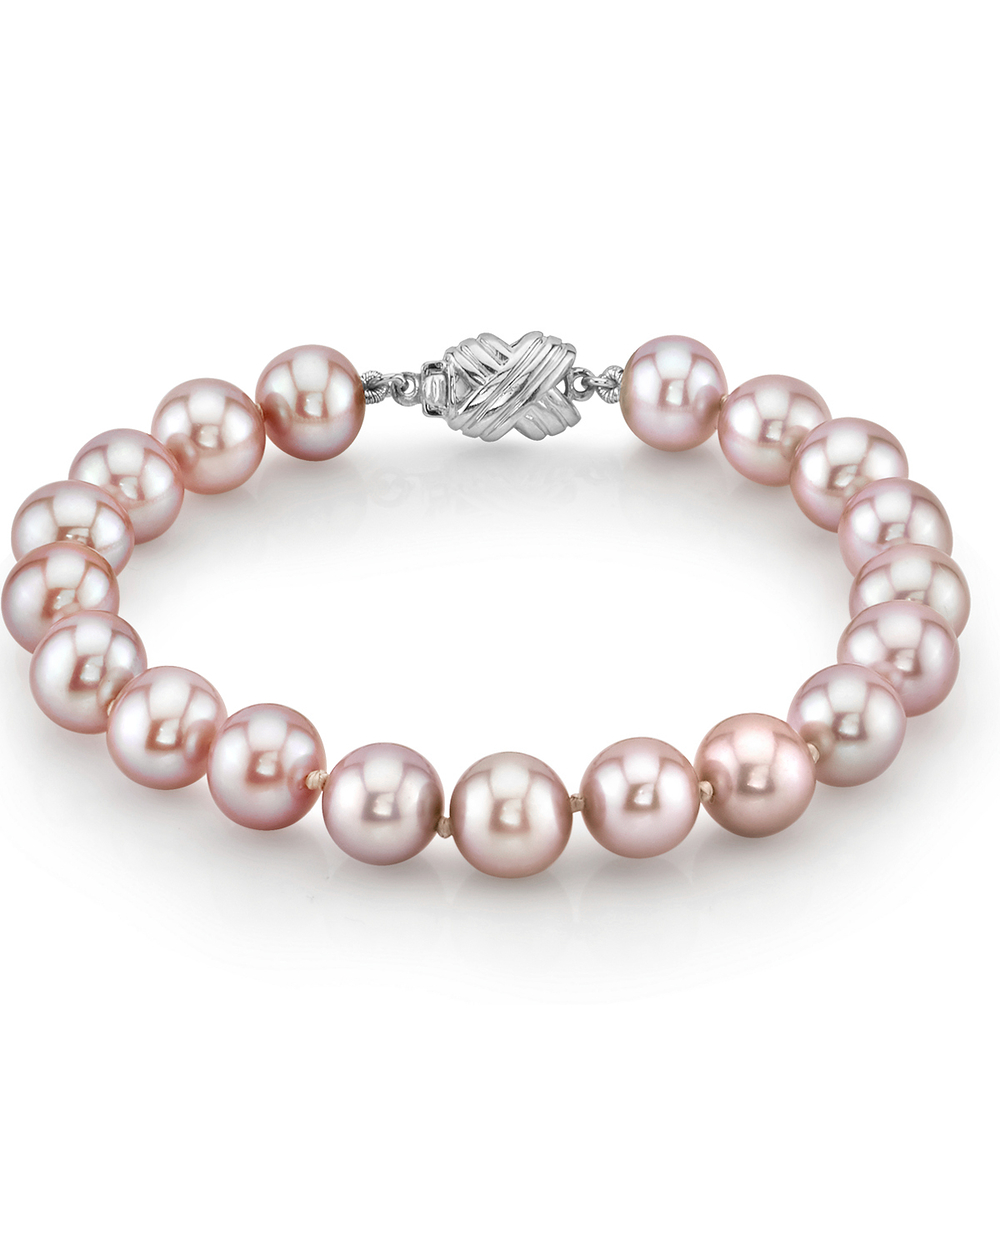 8-9mm Pink Freshwater Pearl Bracelet - AAAA Quality